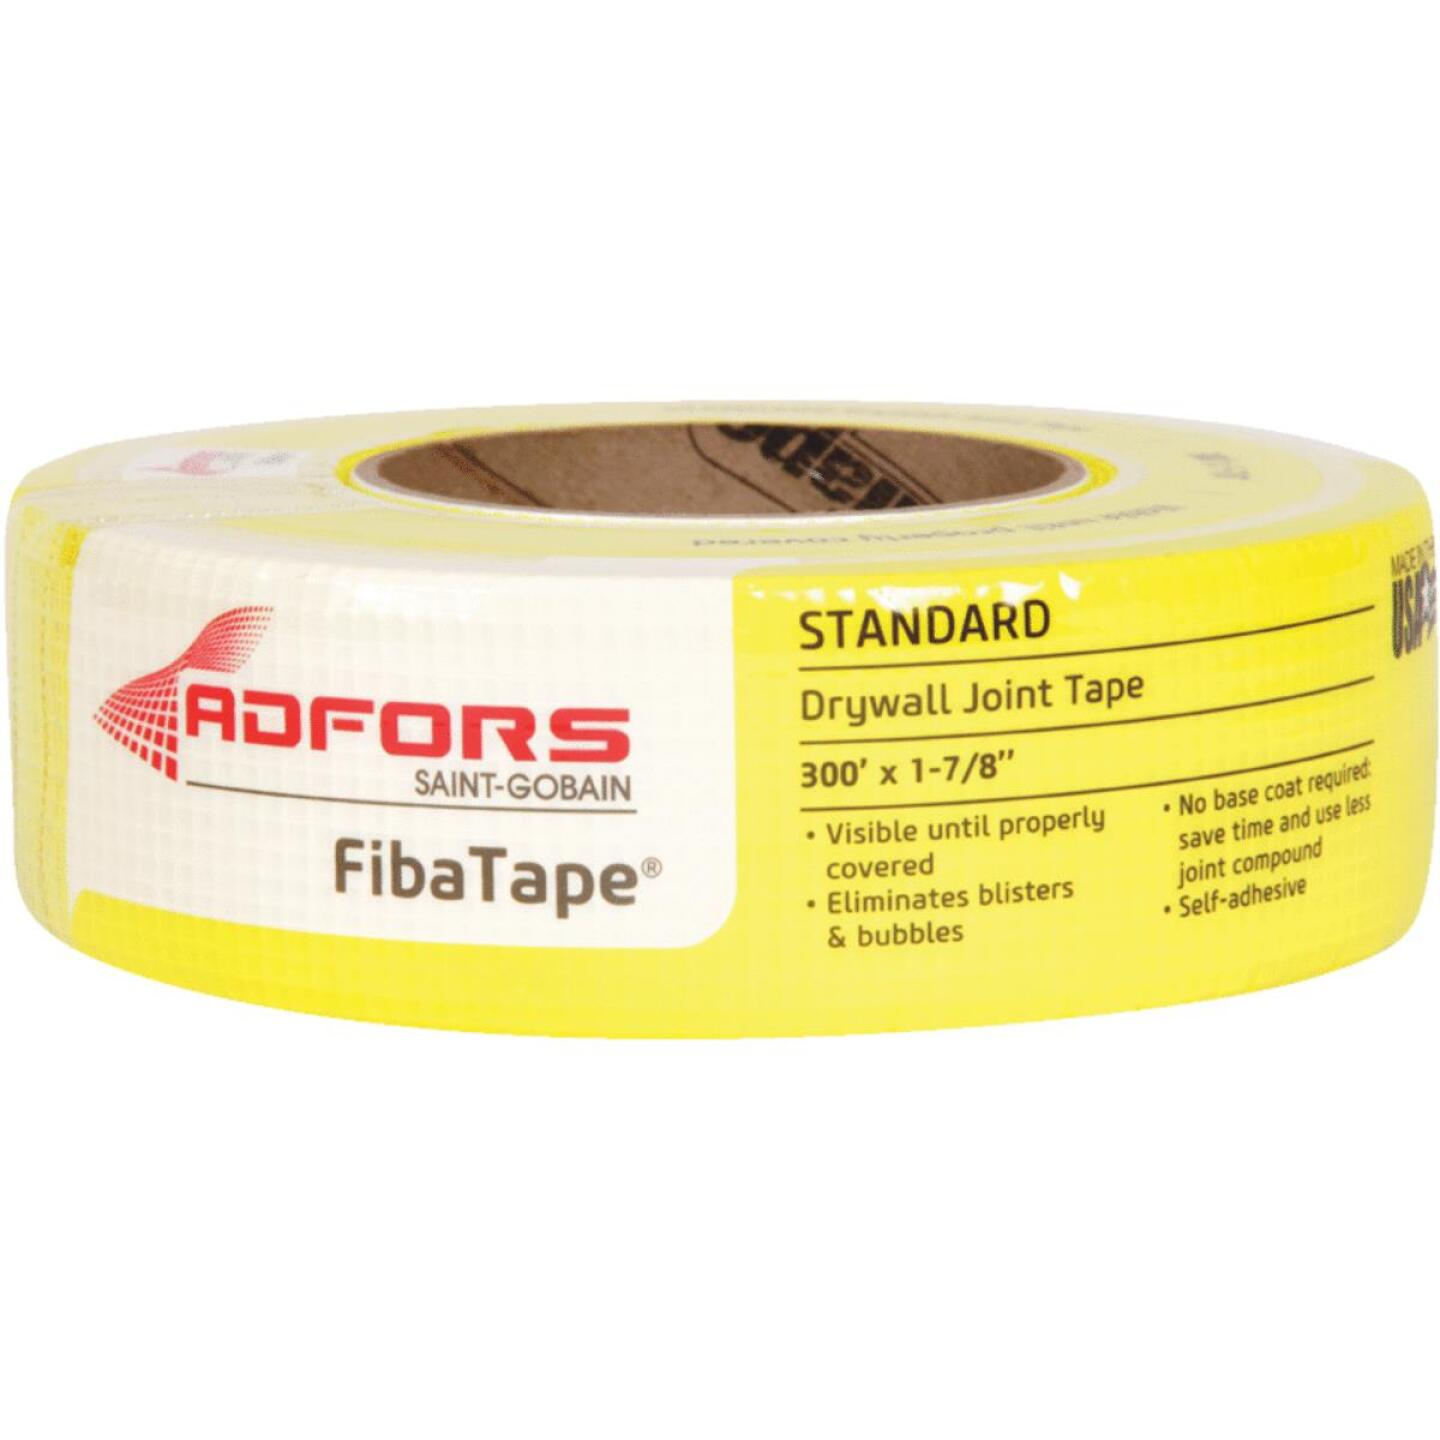 FibaTape 1-7/8 In. x 300 Ft. Yellow Self-Adhesive Joint Drywall Tape Image 1